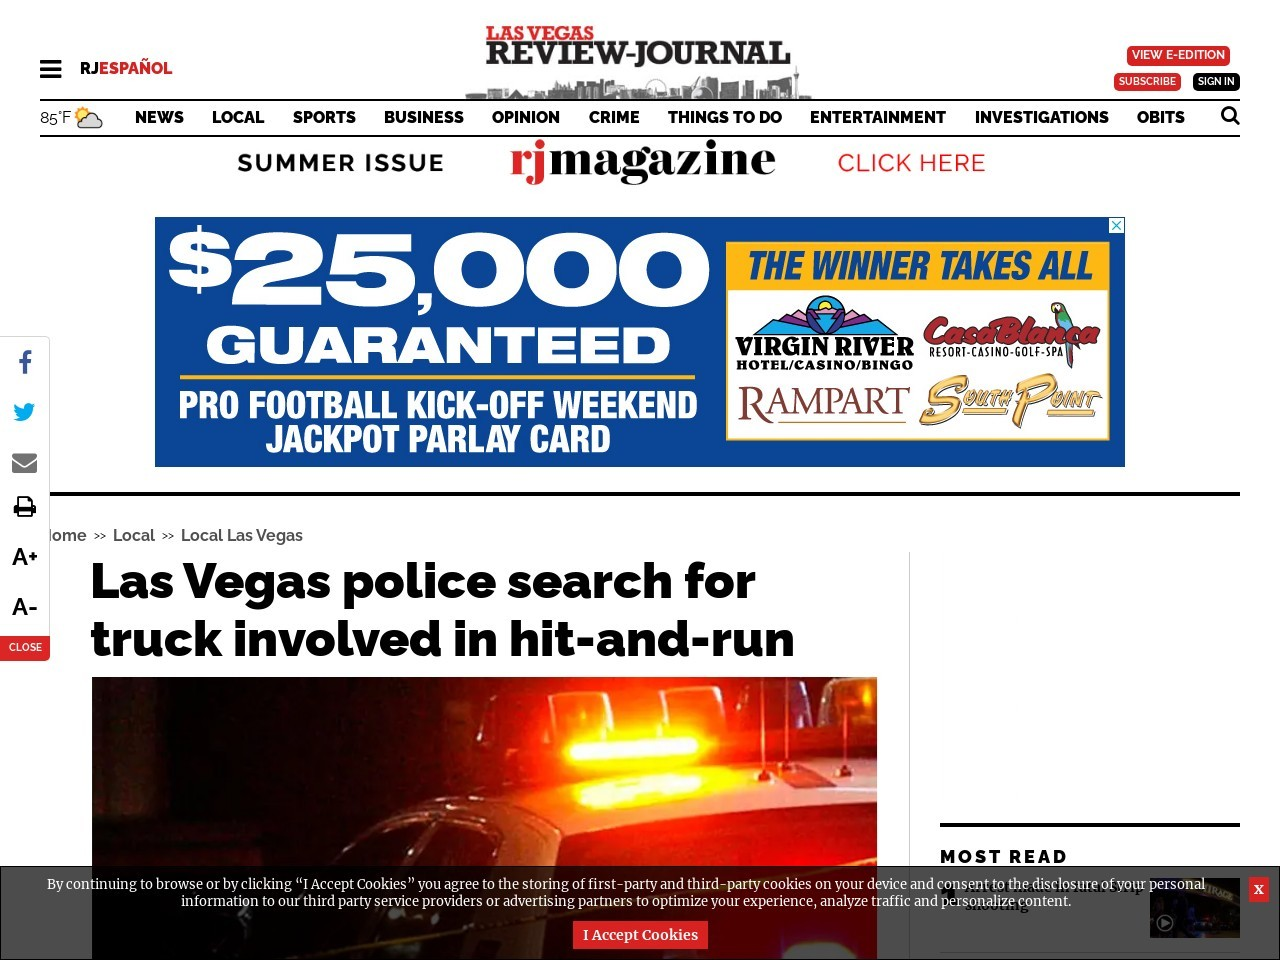 Las Vegas police search for truck involved in hit-and-run